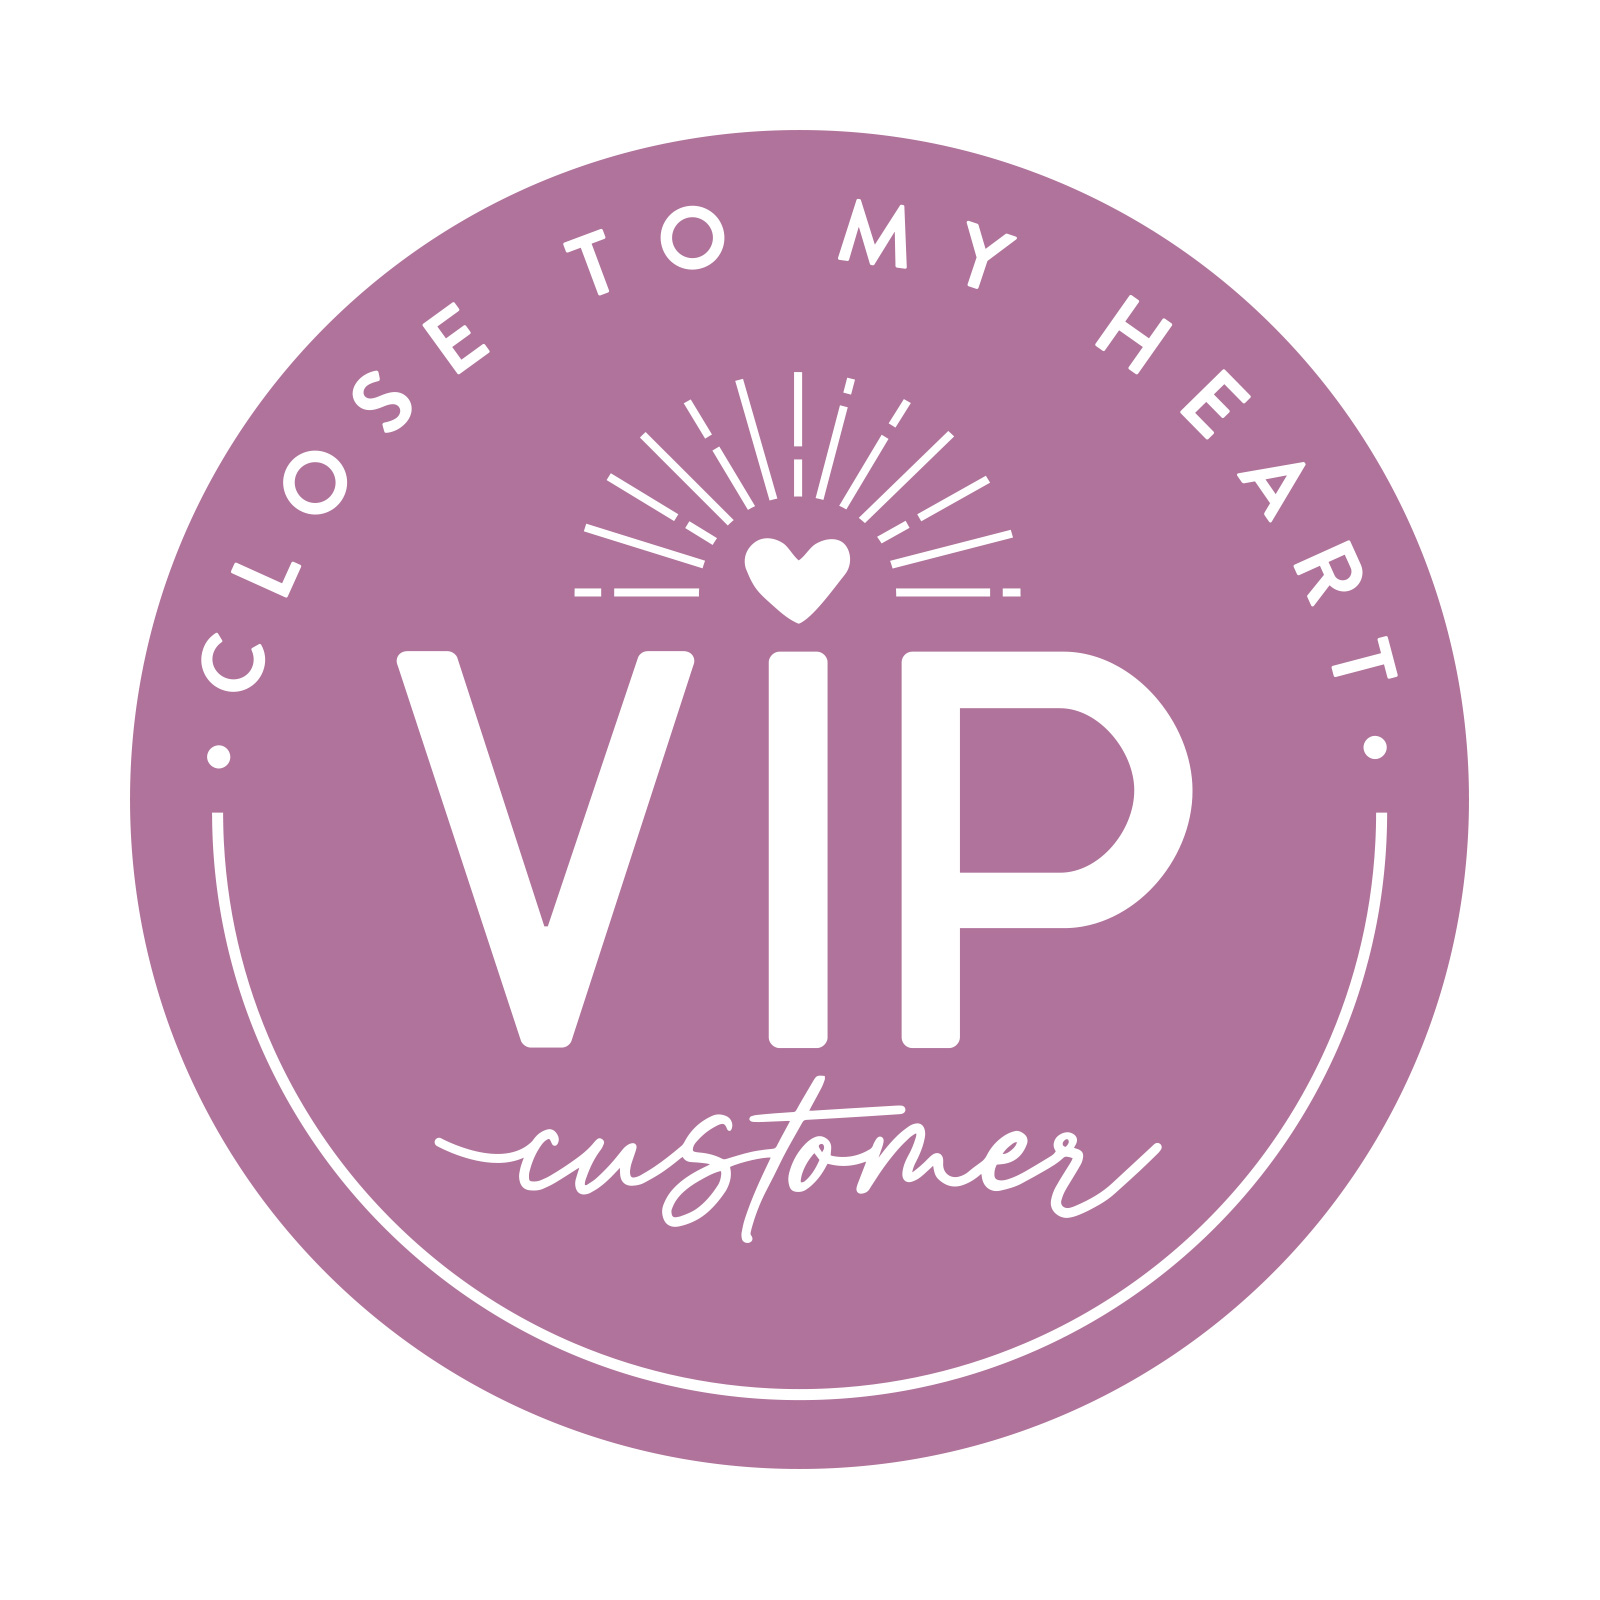 Close To My Heart VIP Program